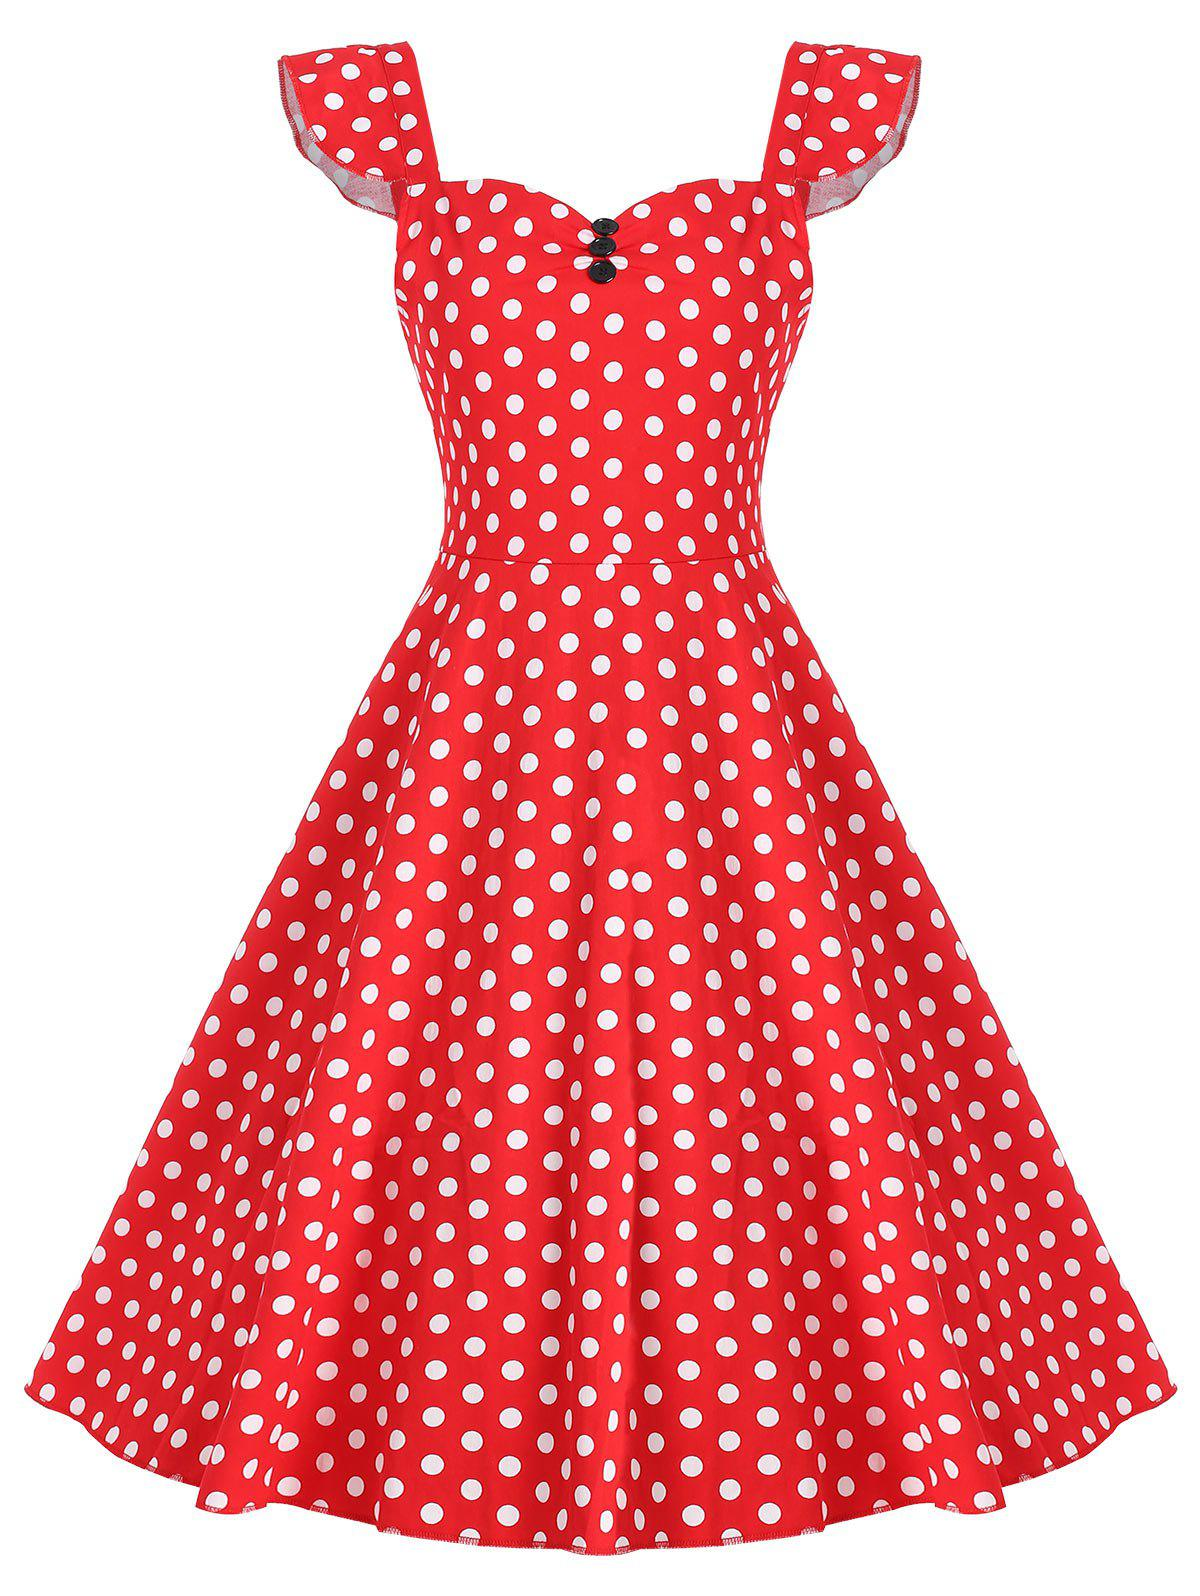 Fashion Vintage Knee Length Polka Dot Print Dress